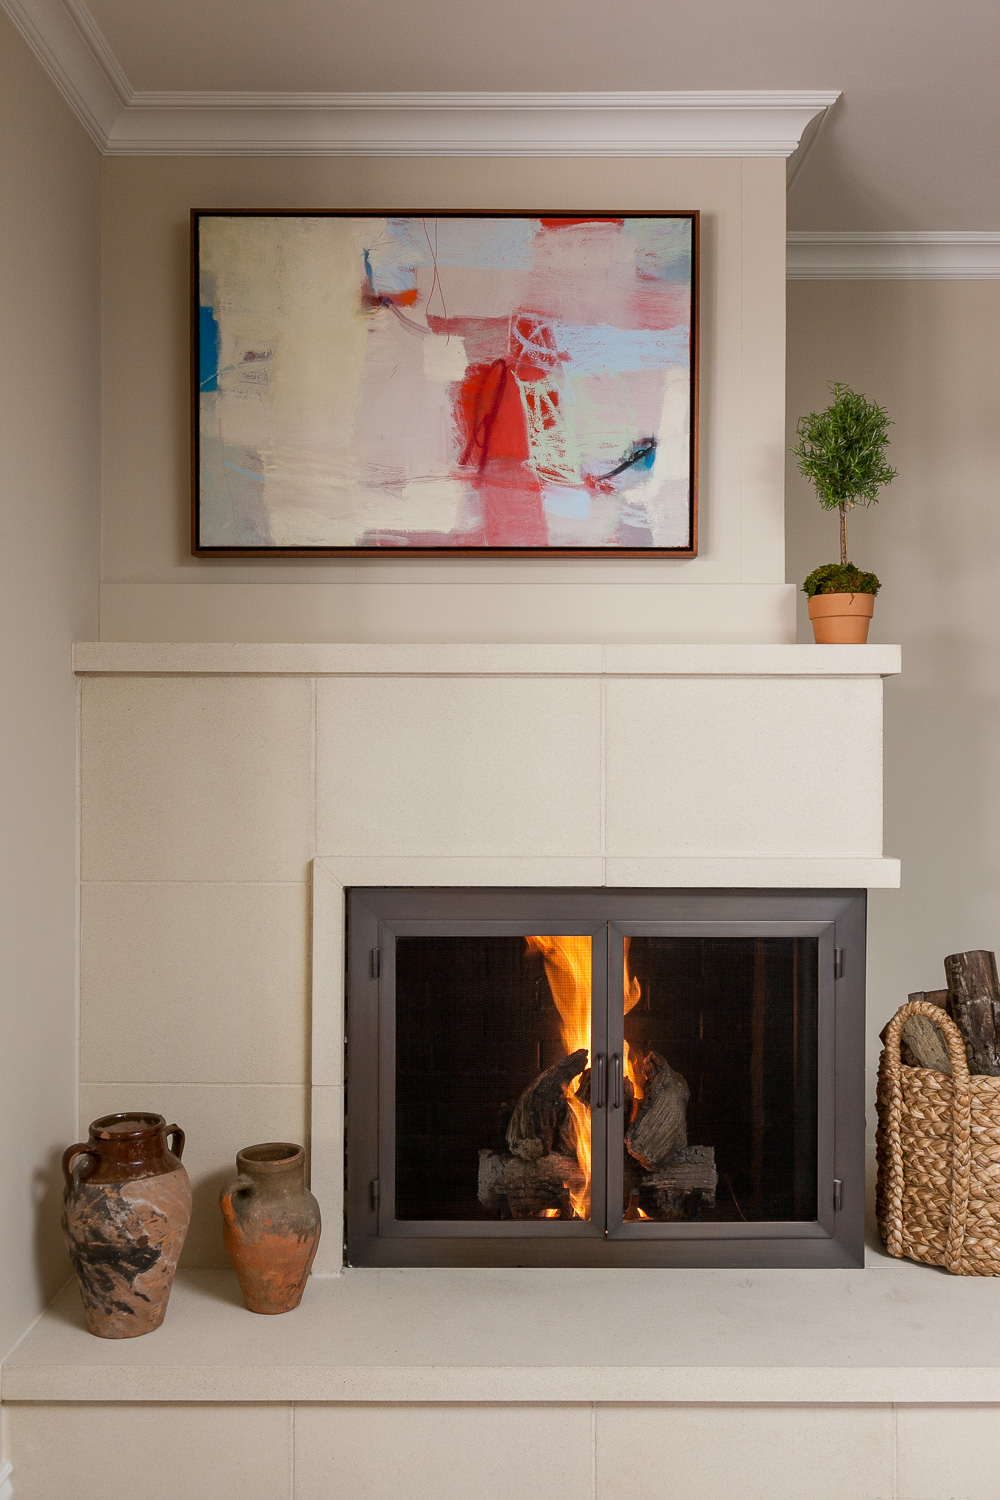 The play of neutrals with a pop of color by artist was a perfect fit over the fireplace in the client's family room.